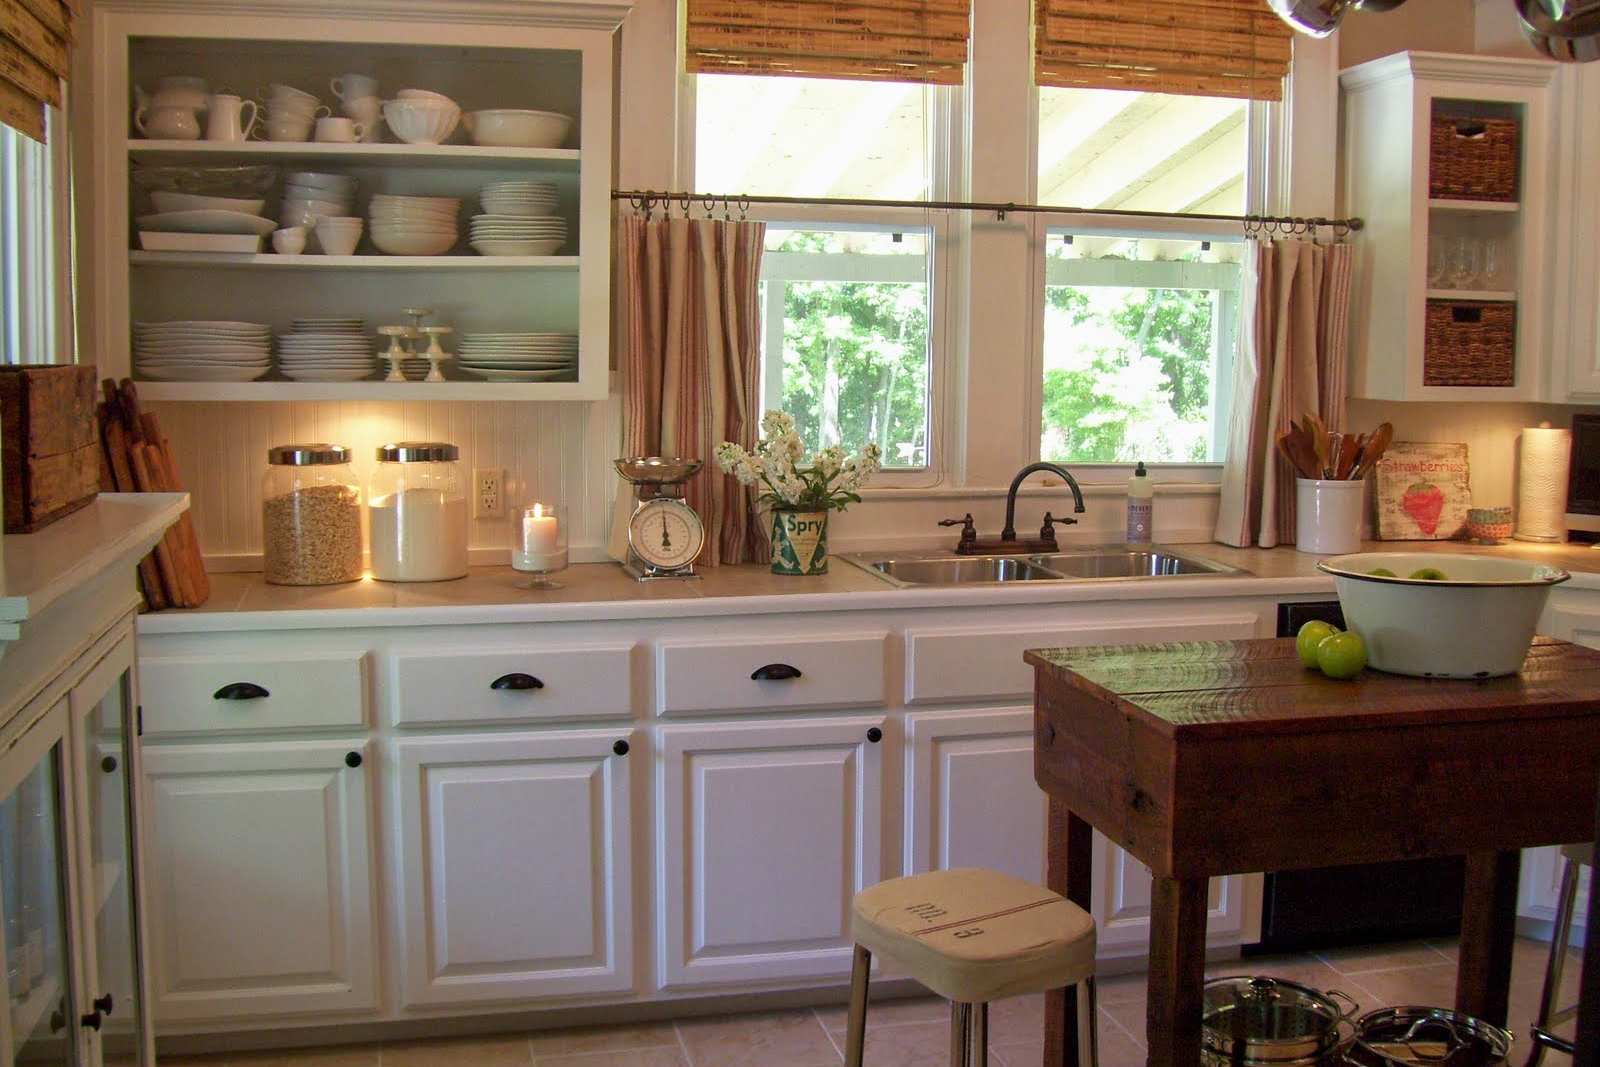 Renovating A Kitchen Remodeling A Kitchen Do It Yourself Kitchen Remodel